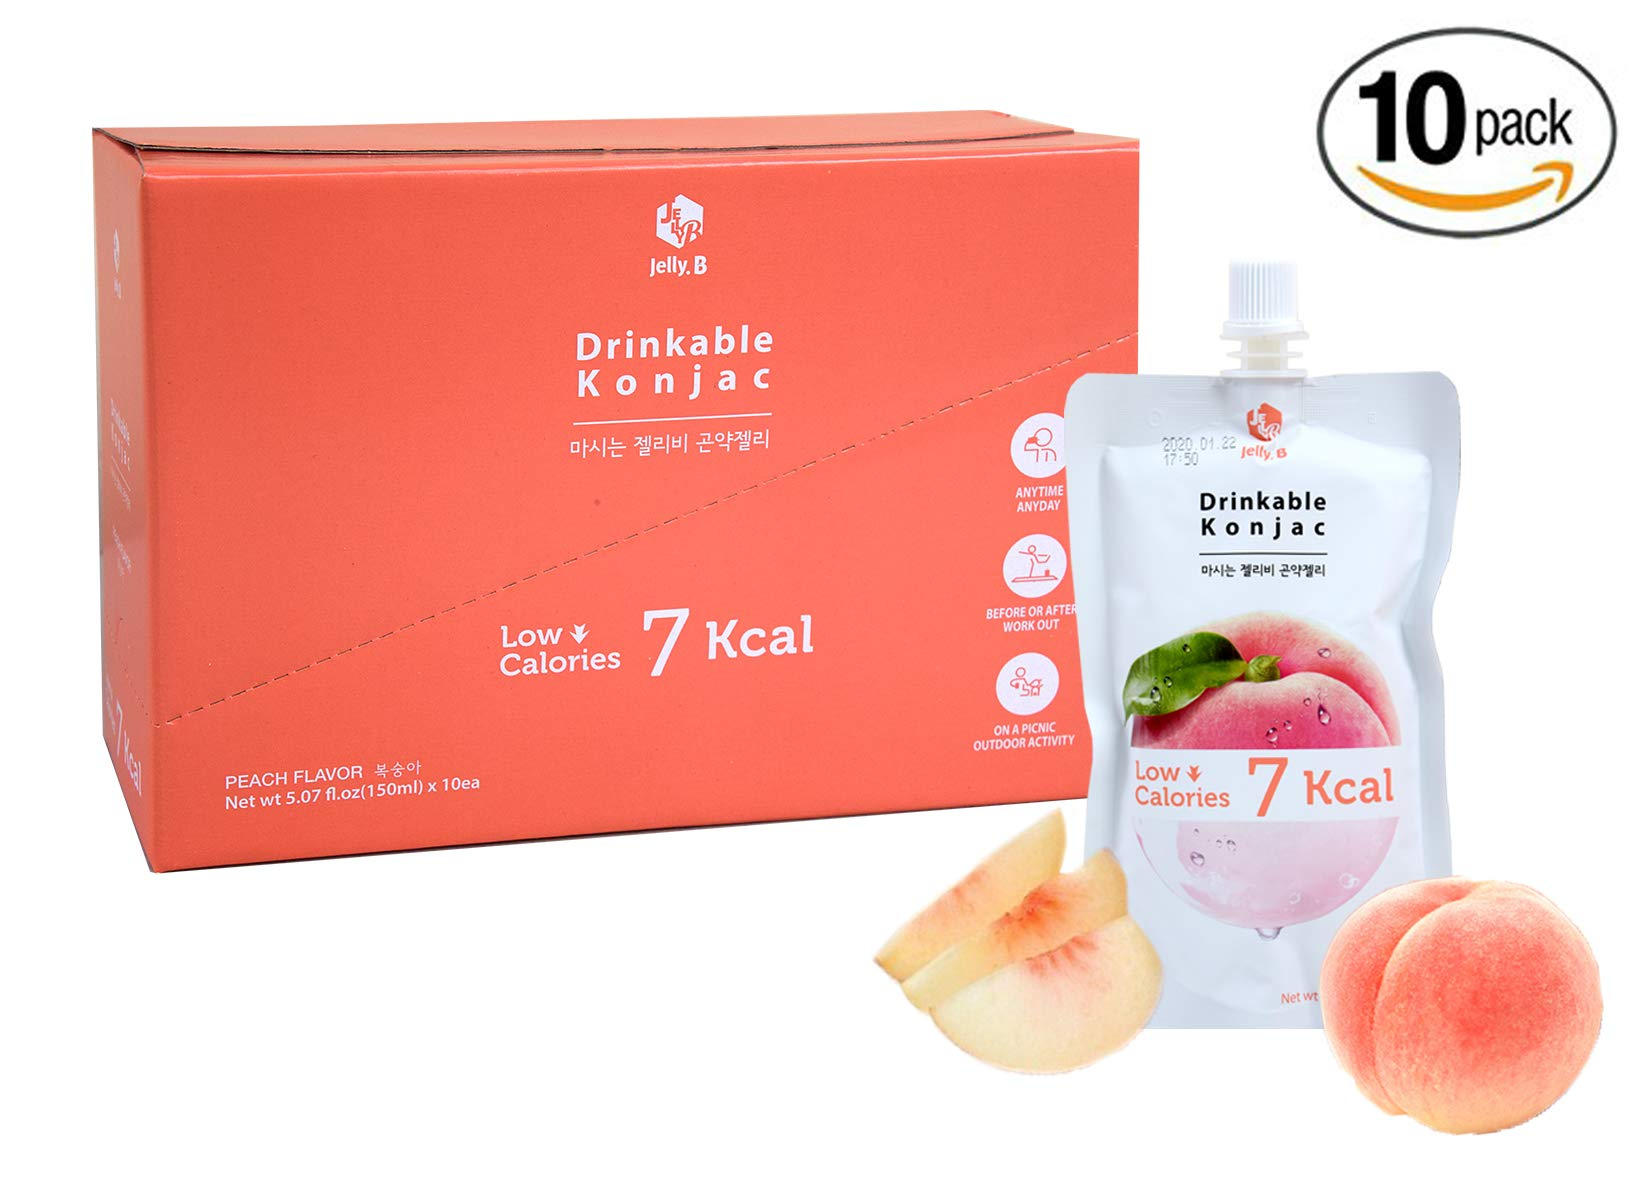 Jelly.B Konjac Jelly (10 Packs of 150ml) - Healthy and Natural Weight Loss Diet Supplement Foods, 0 Gram Sugar, Low Calorie, Only 6 kcal Each Packets, Peach Flavor, Made in Korea.